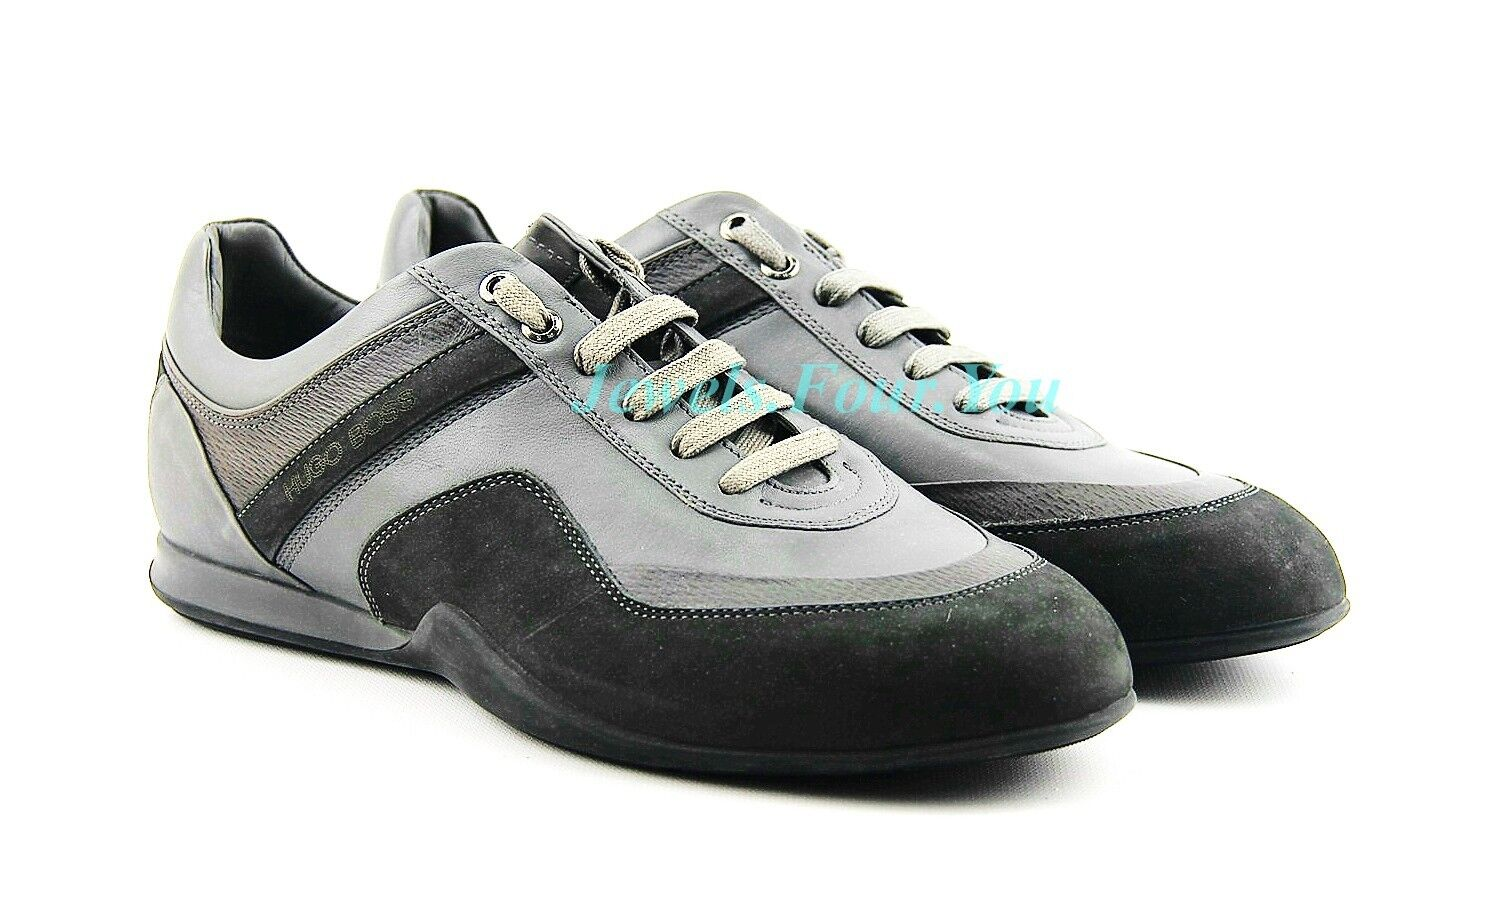 HUGO BOSS BLACK LABEL GRAMOL GRAY SHOES SNEAKERS LEATHER NEW SZ 10 43